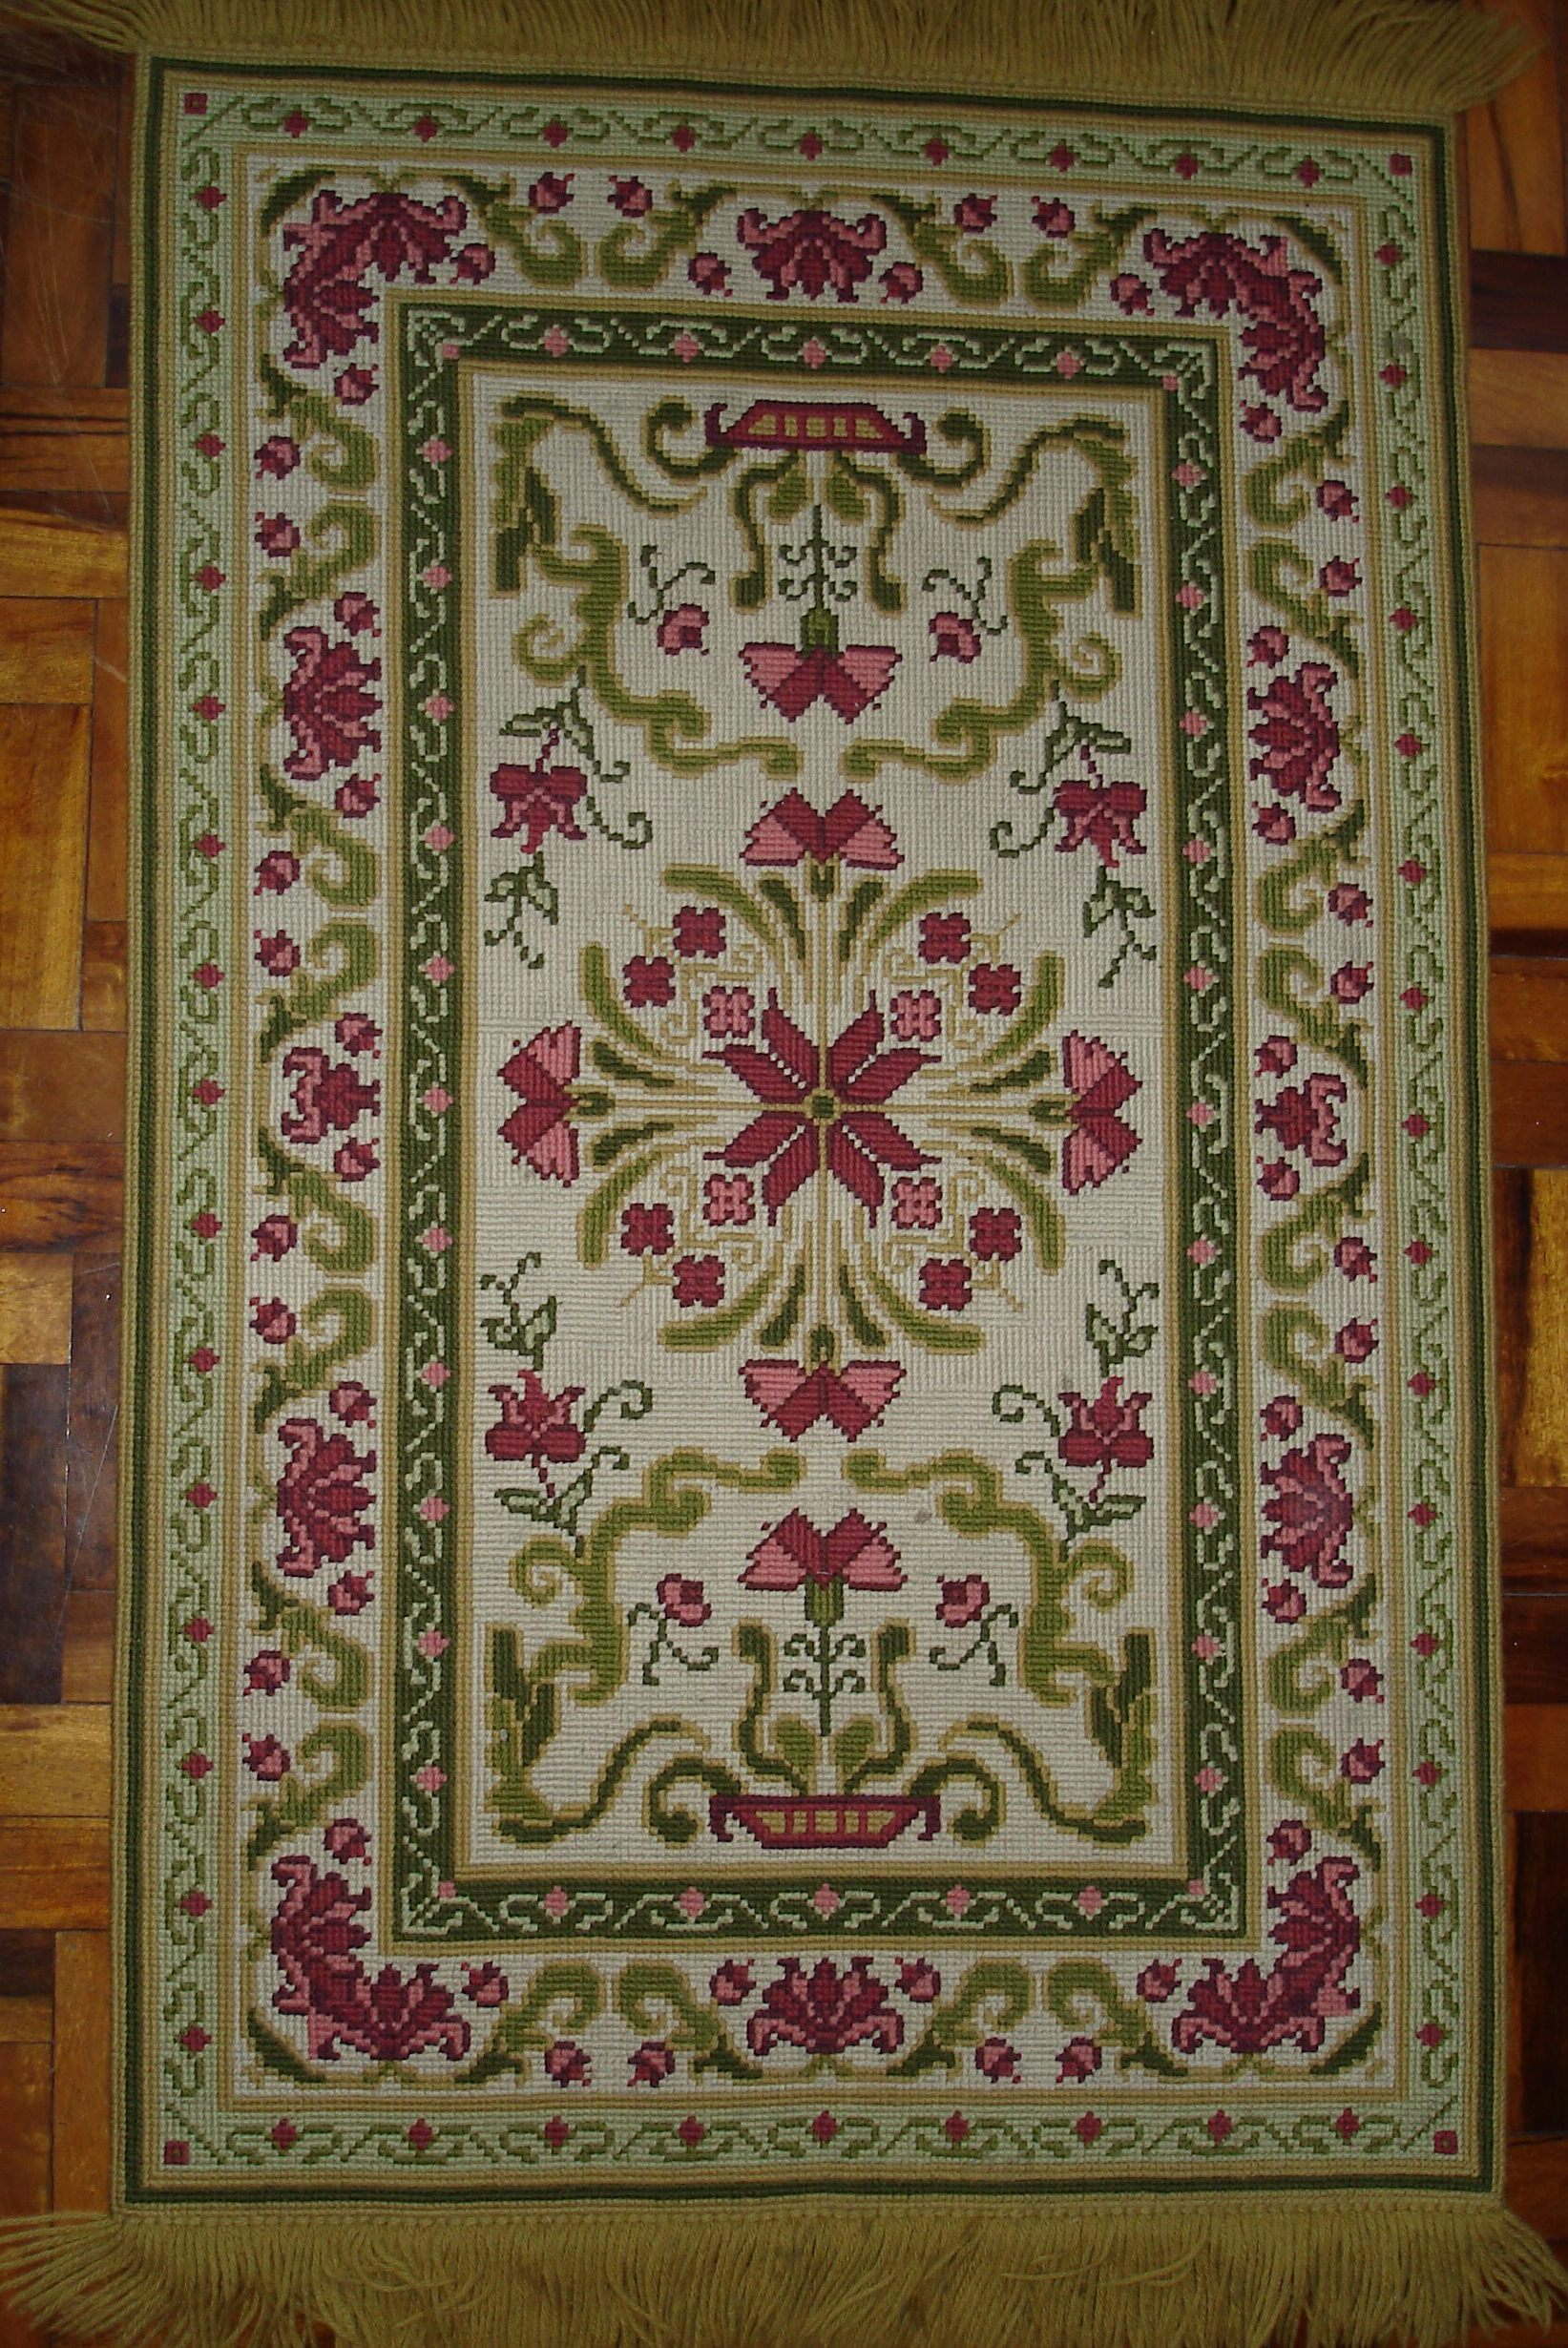 Brazilian Carpet By Eurico Zimbres (Own work) [CC-BY-SA-2.5 (https://creativecommons.org/licenses/by-sa/2.5)], via Wikimedia Commons